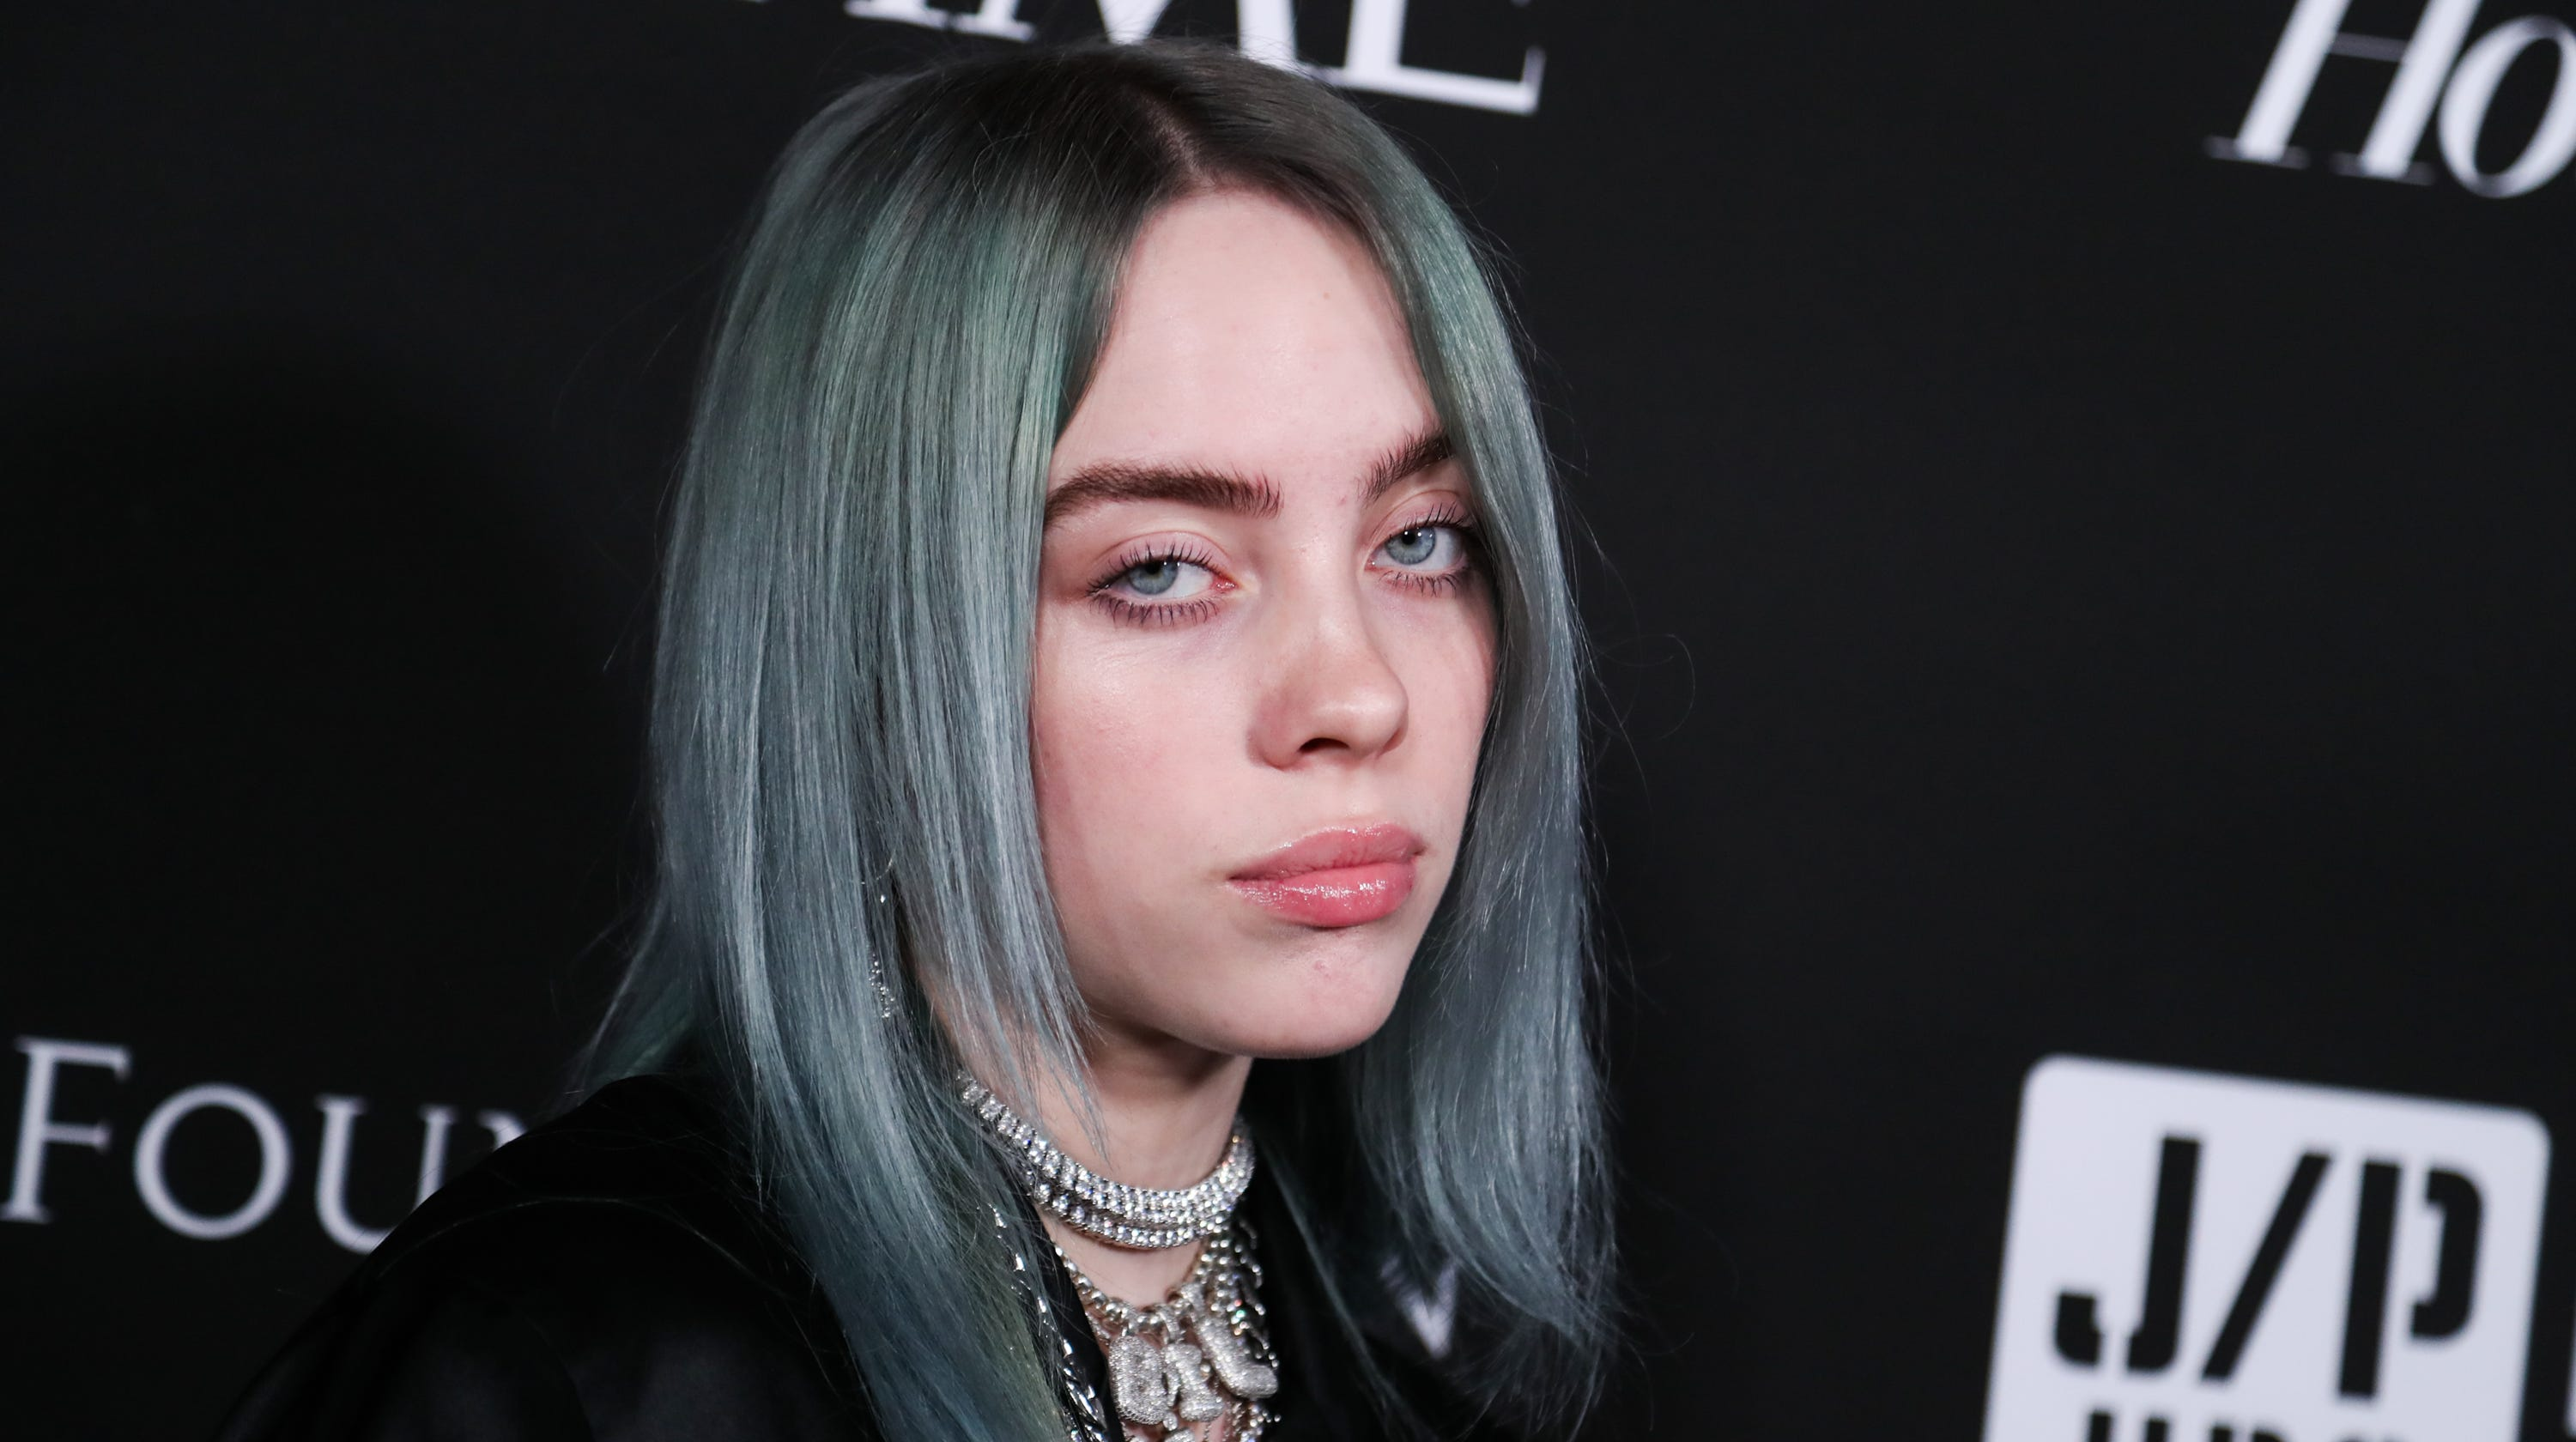 Billie Eilish: Meet the 17-year-old with the No  1 album in